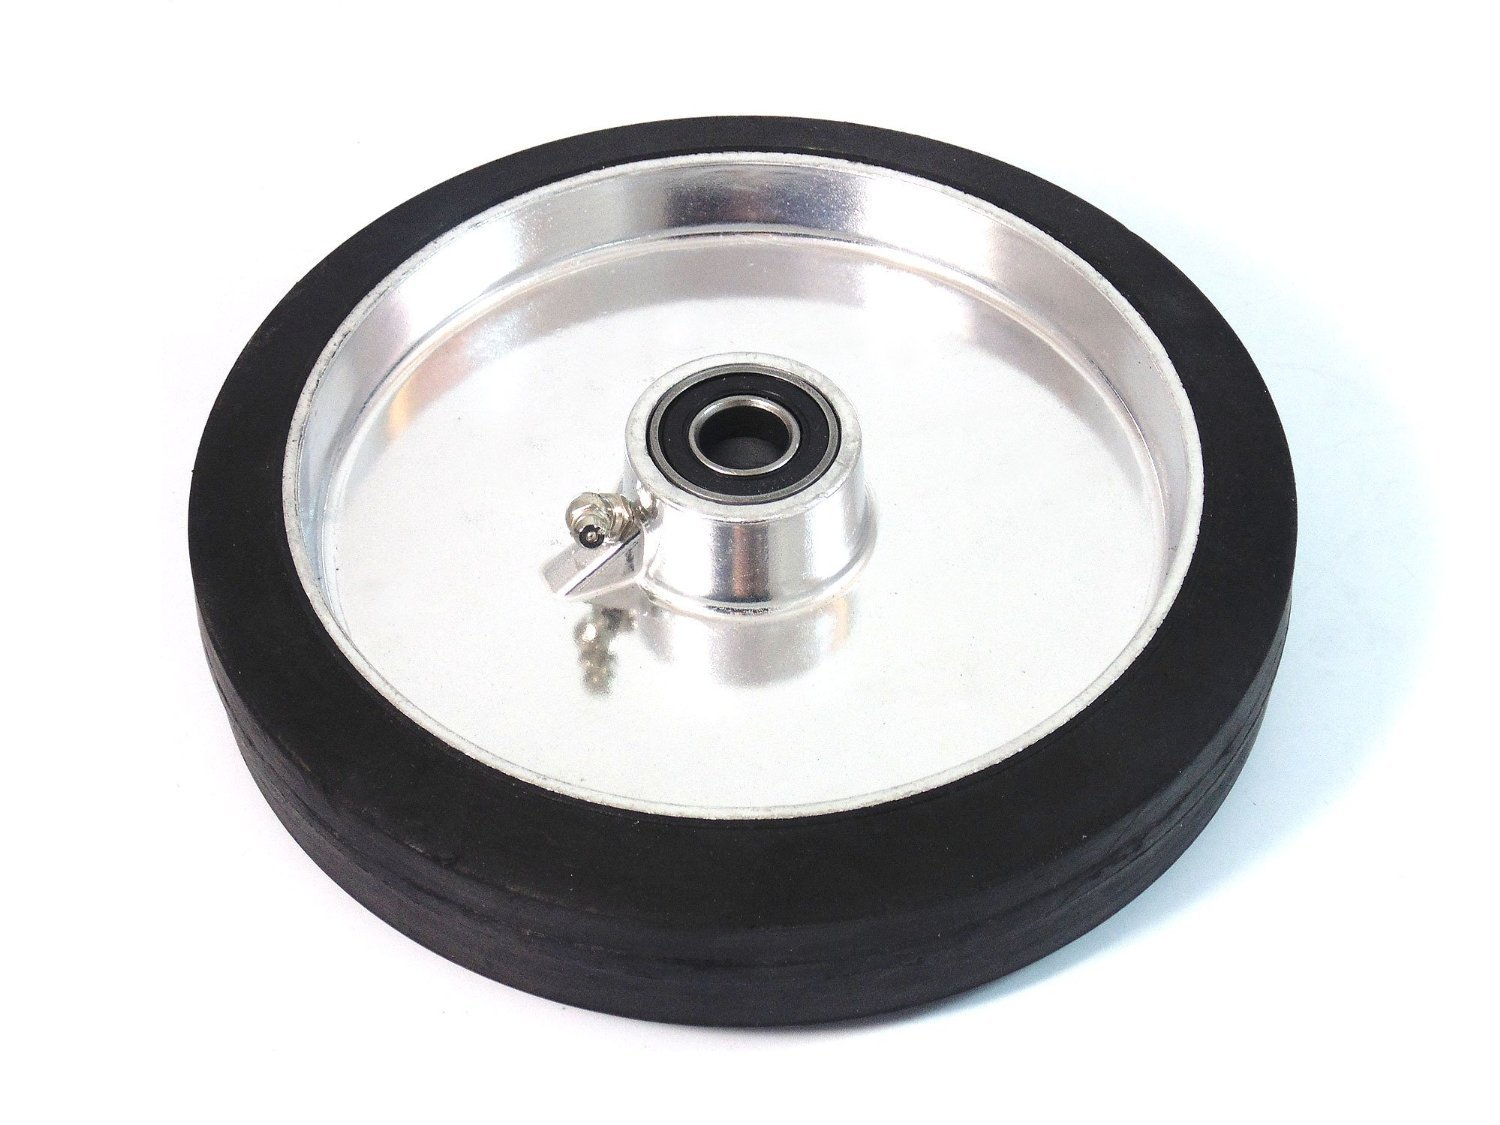 (1 Pc) Troy Safety WAW8 8'' x 1 5/8'' Aluminum Flat Free Wheel for Hand Trucks